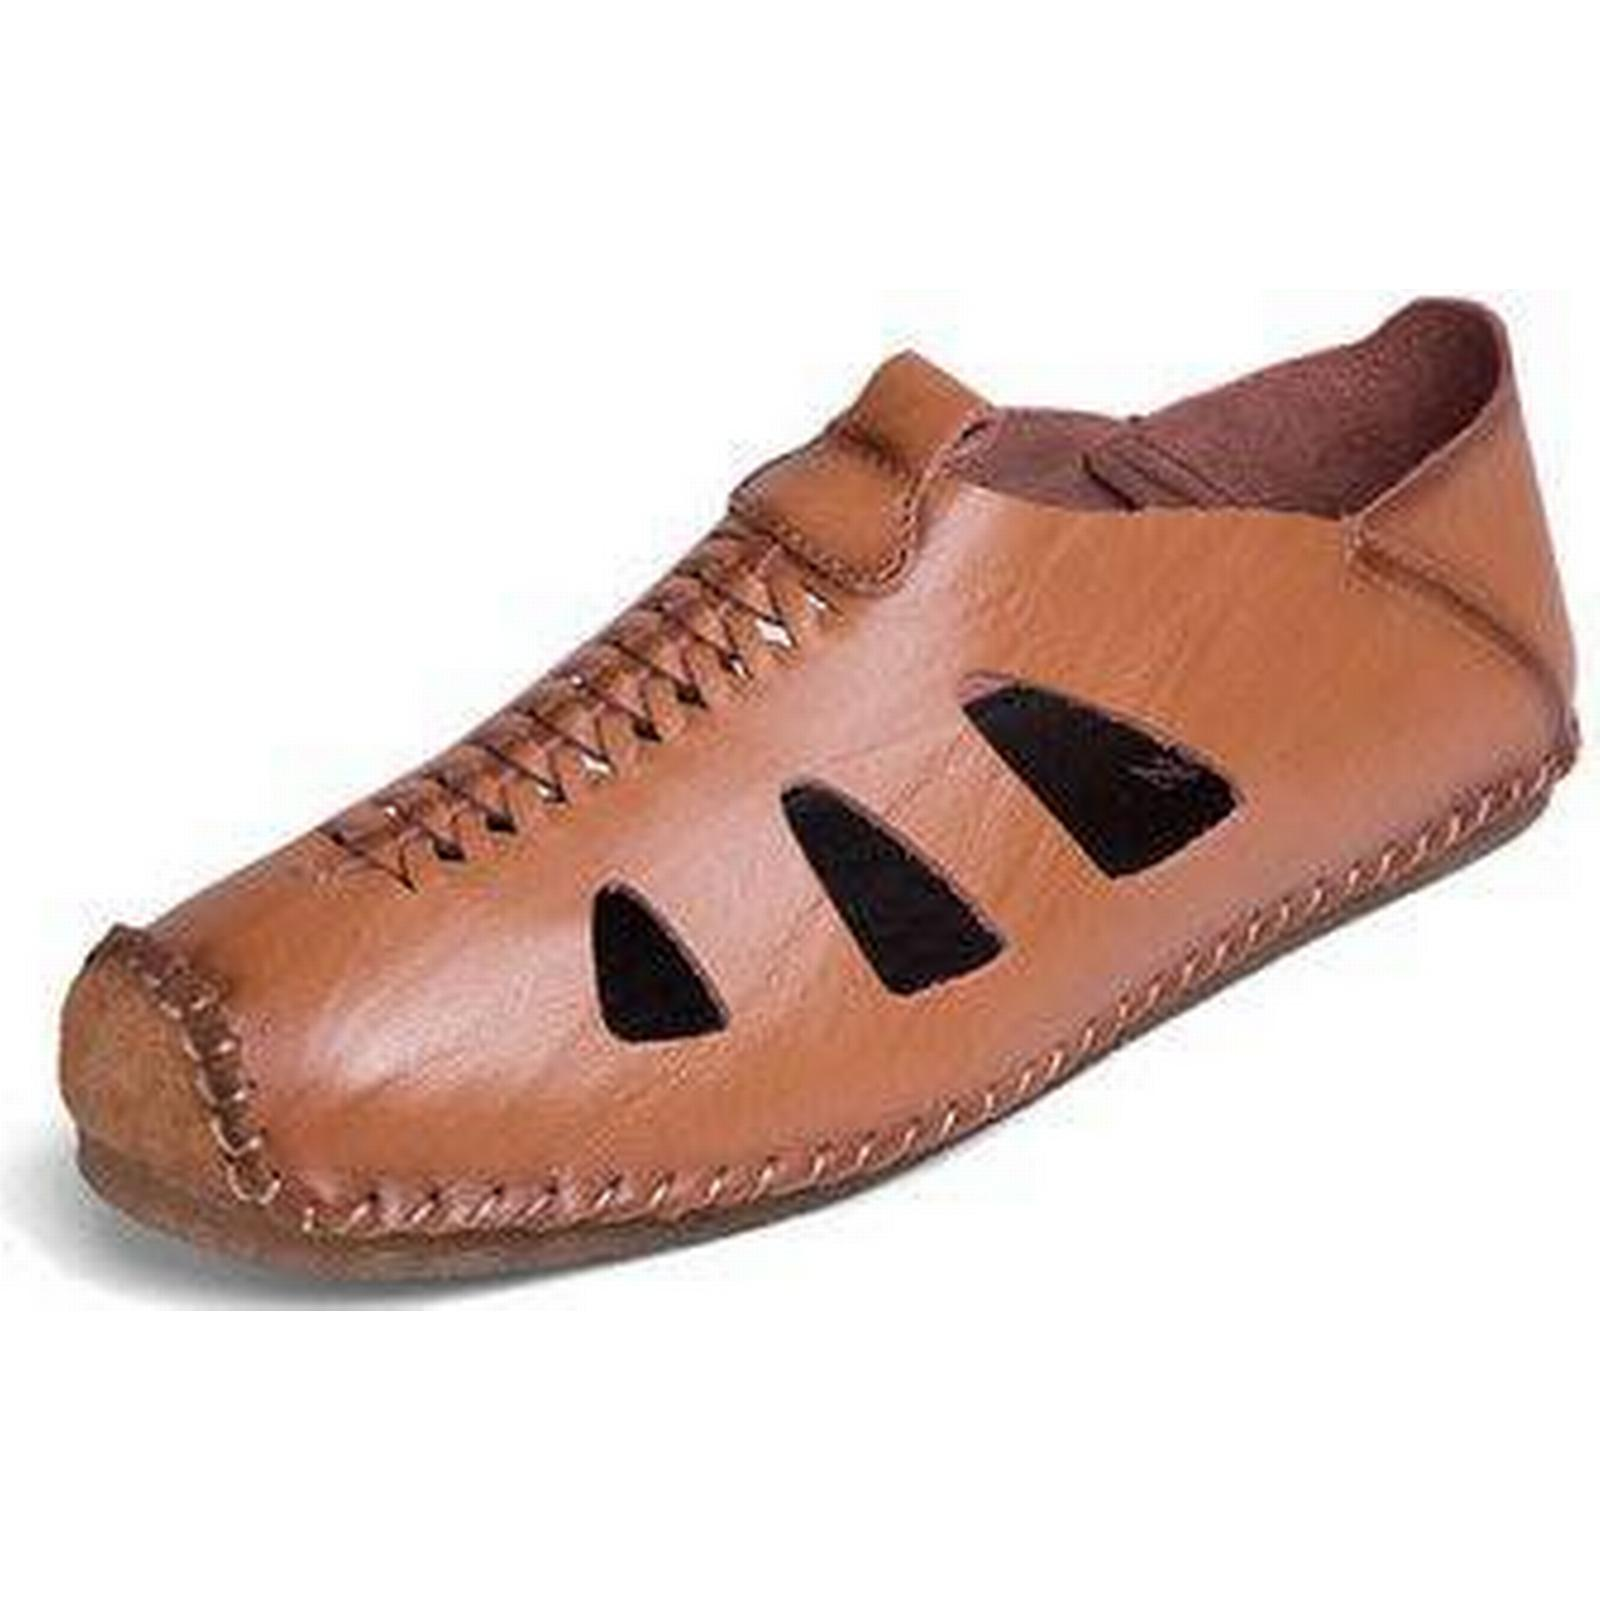 Men Stitching Hole Leather Loafers Loafers Leather 5f952a